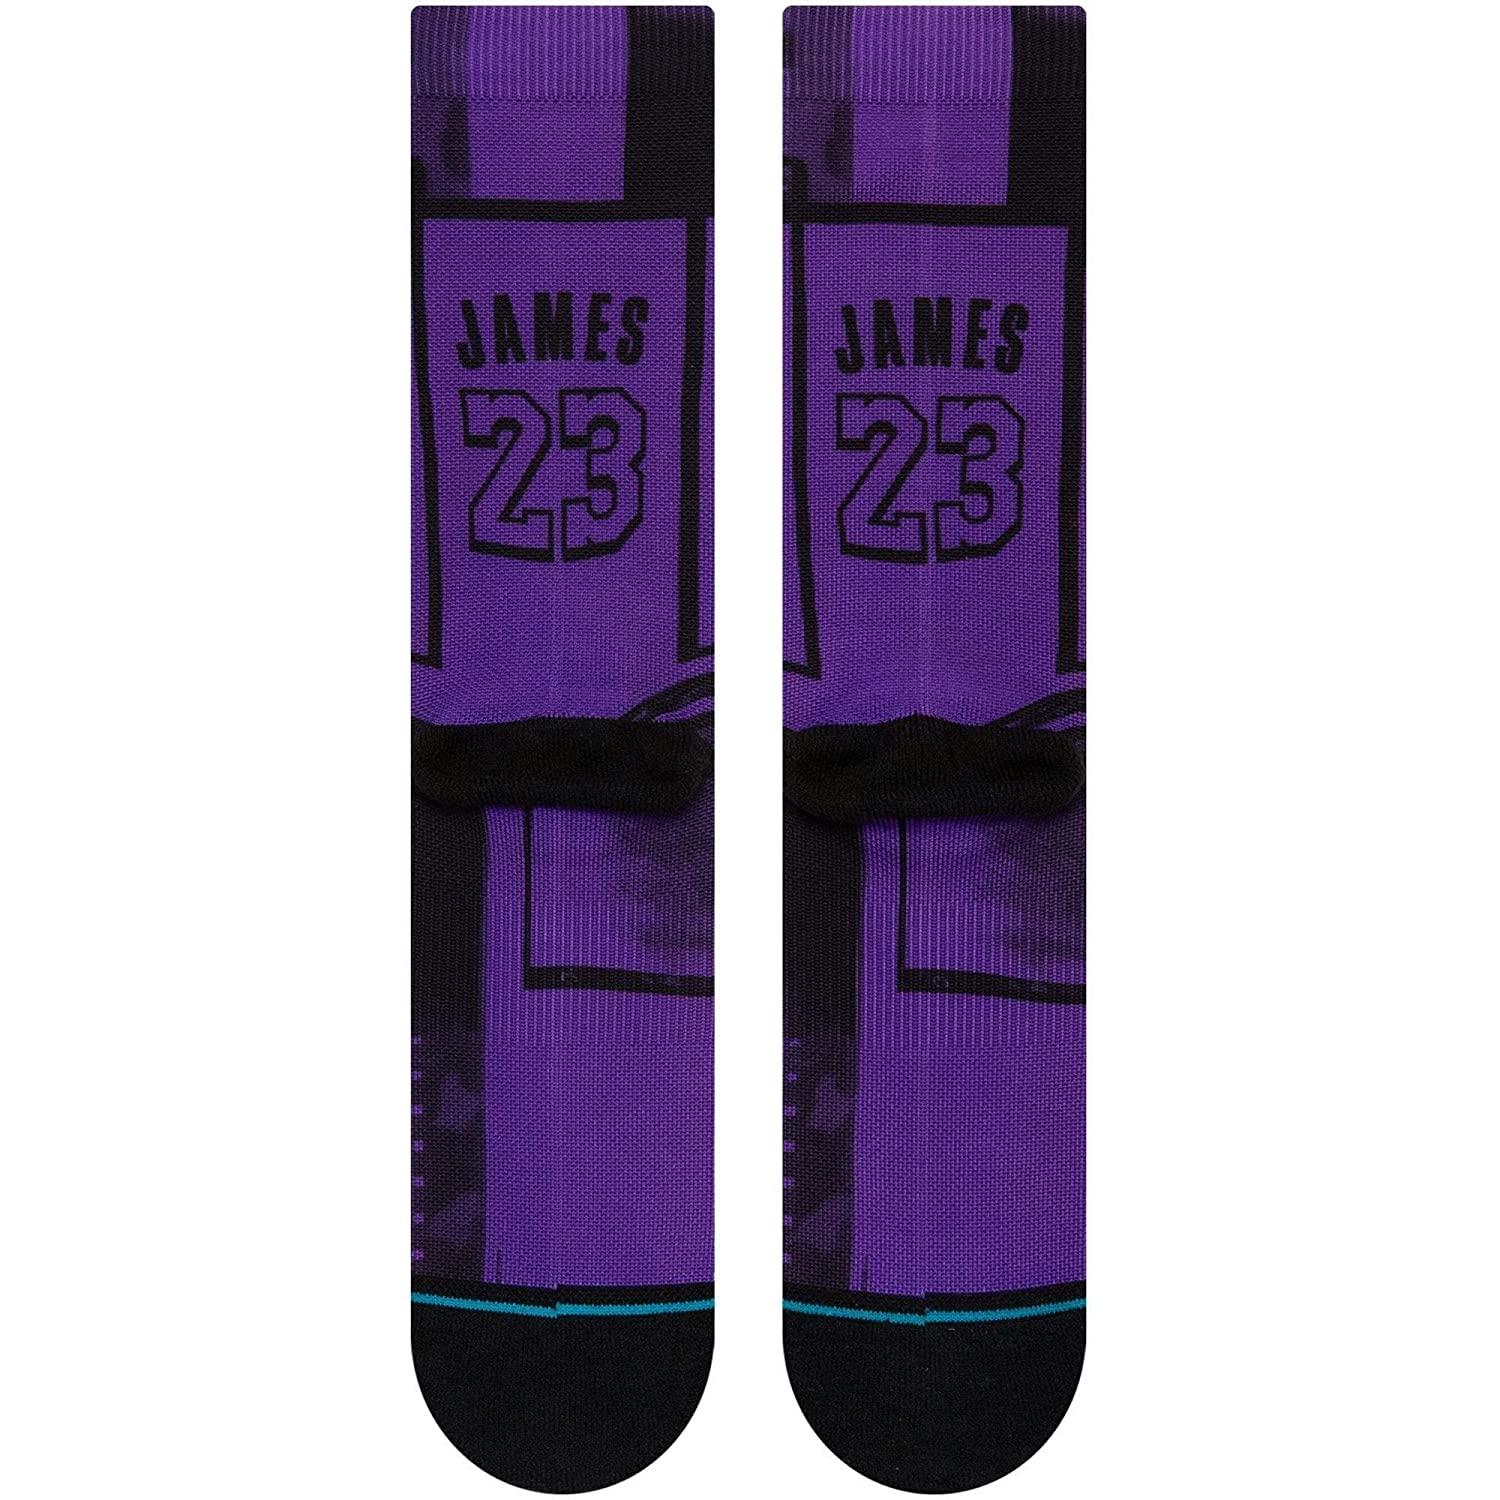 Stance Calcetines Nba Los Angeles Lakers LeBron James Lbj 2 La Morado 43-46 EU: Amazon.es: Ropa y accesorios